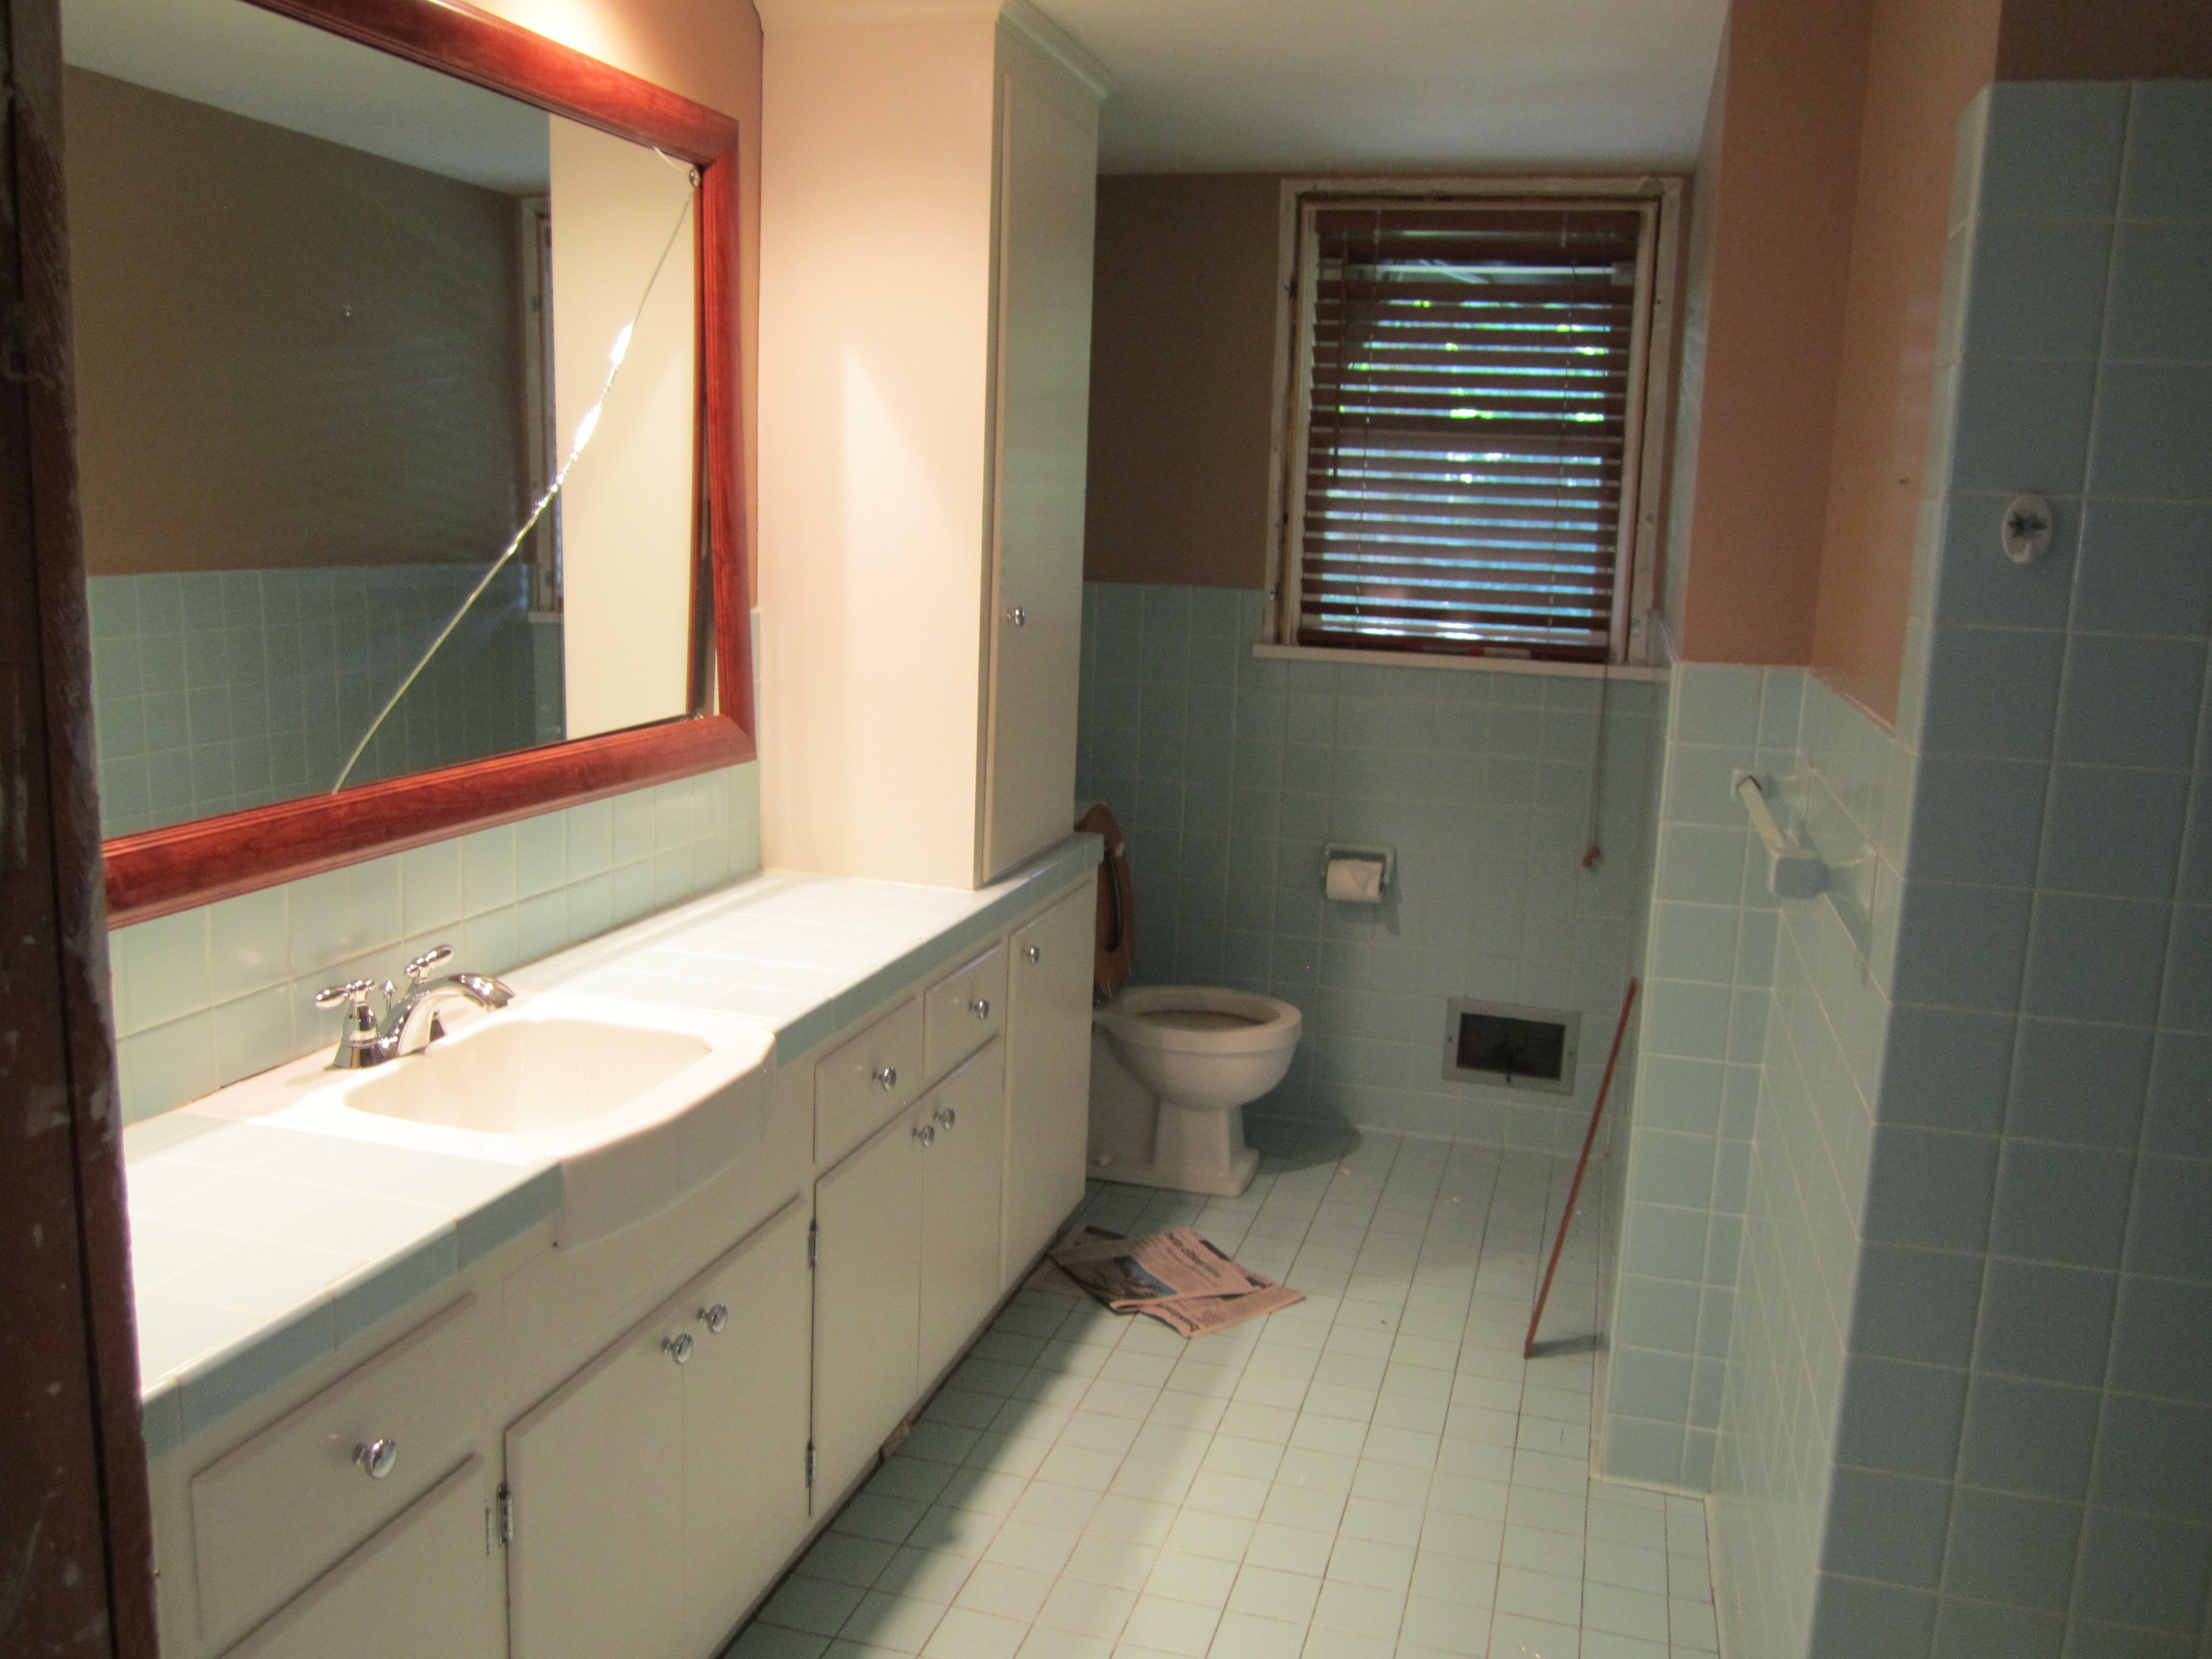 6820Oaklawnbathroom-before.JPG